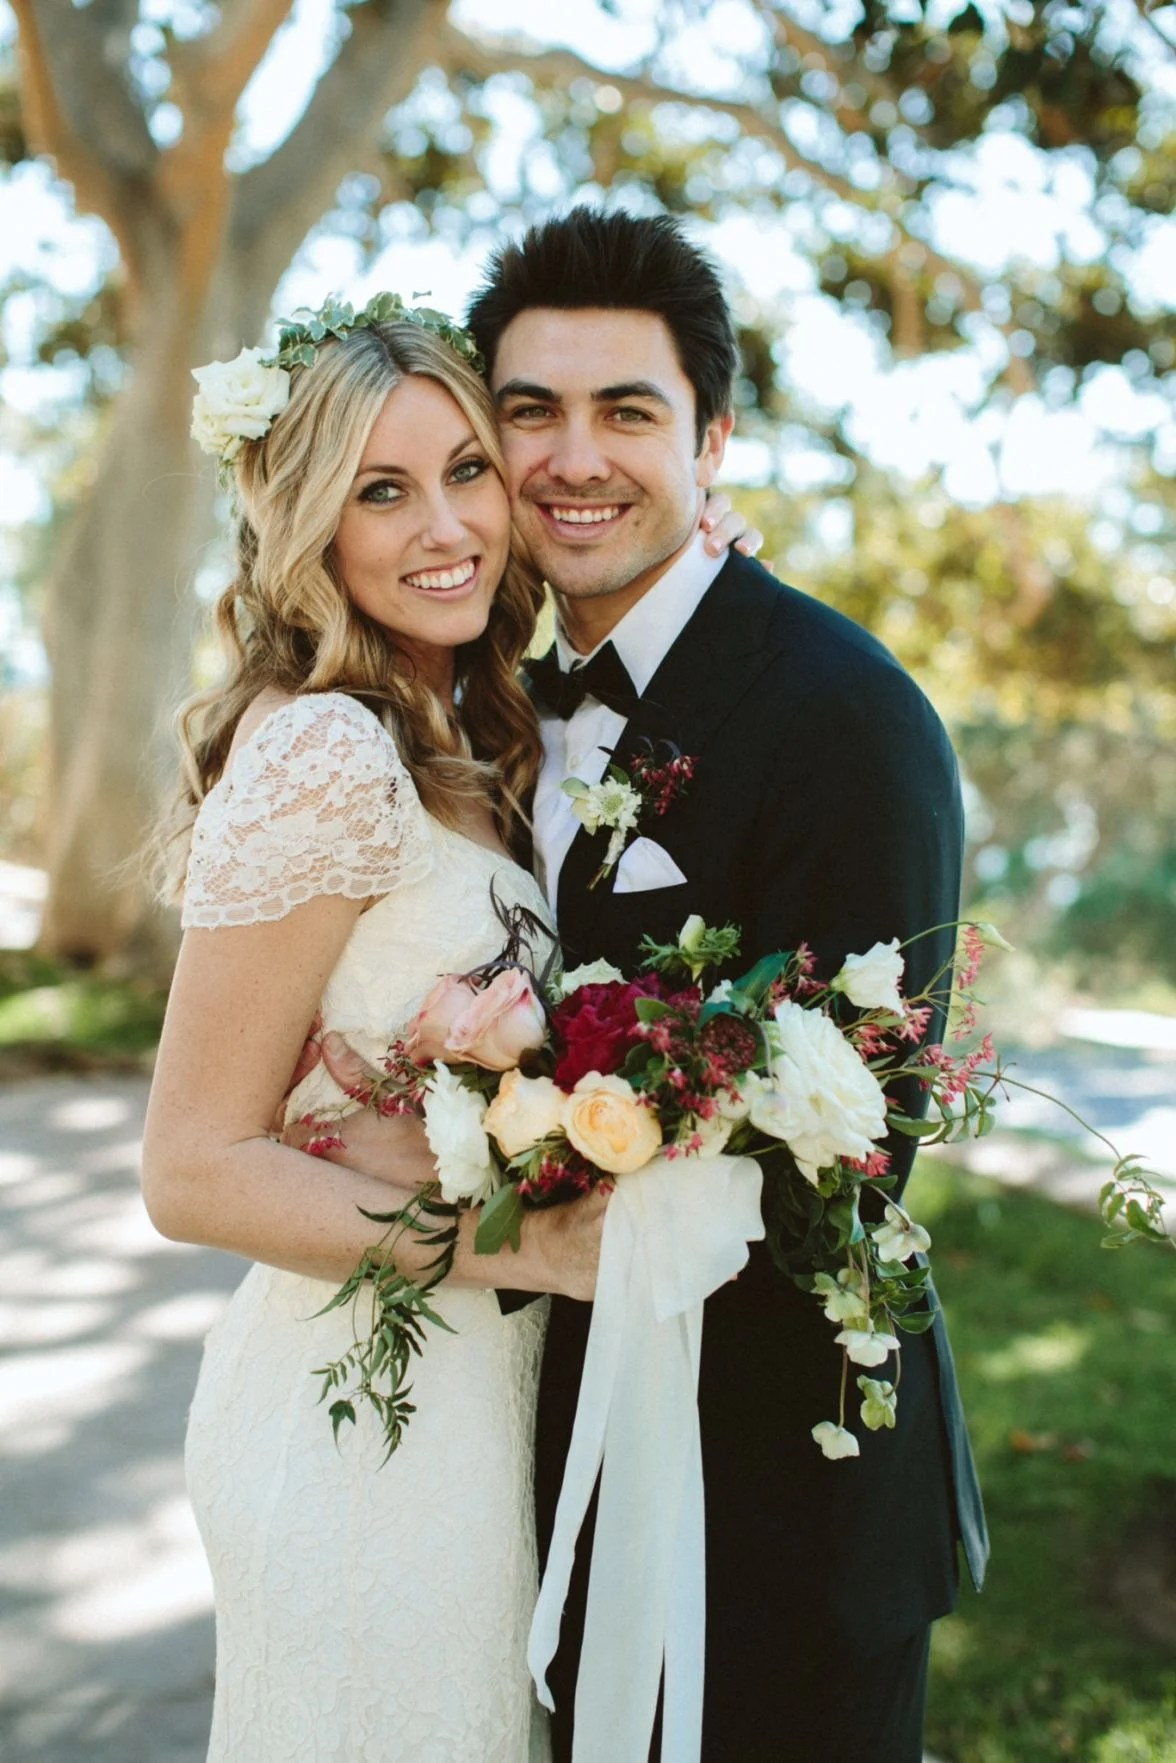 Braves player musician Chase dArnaud weds Kaitlyn Miller